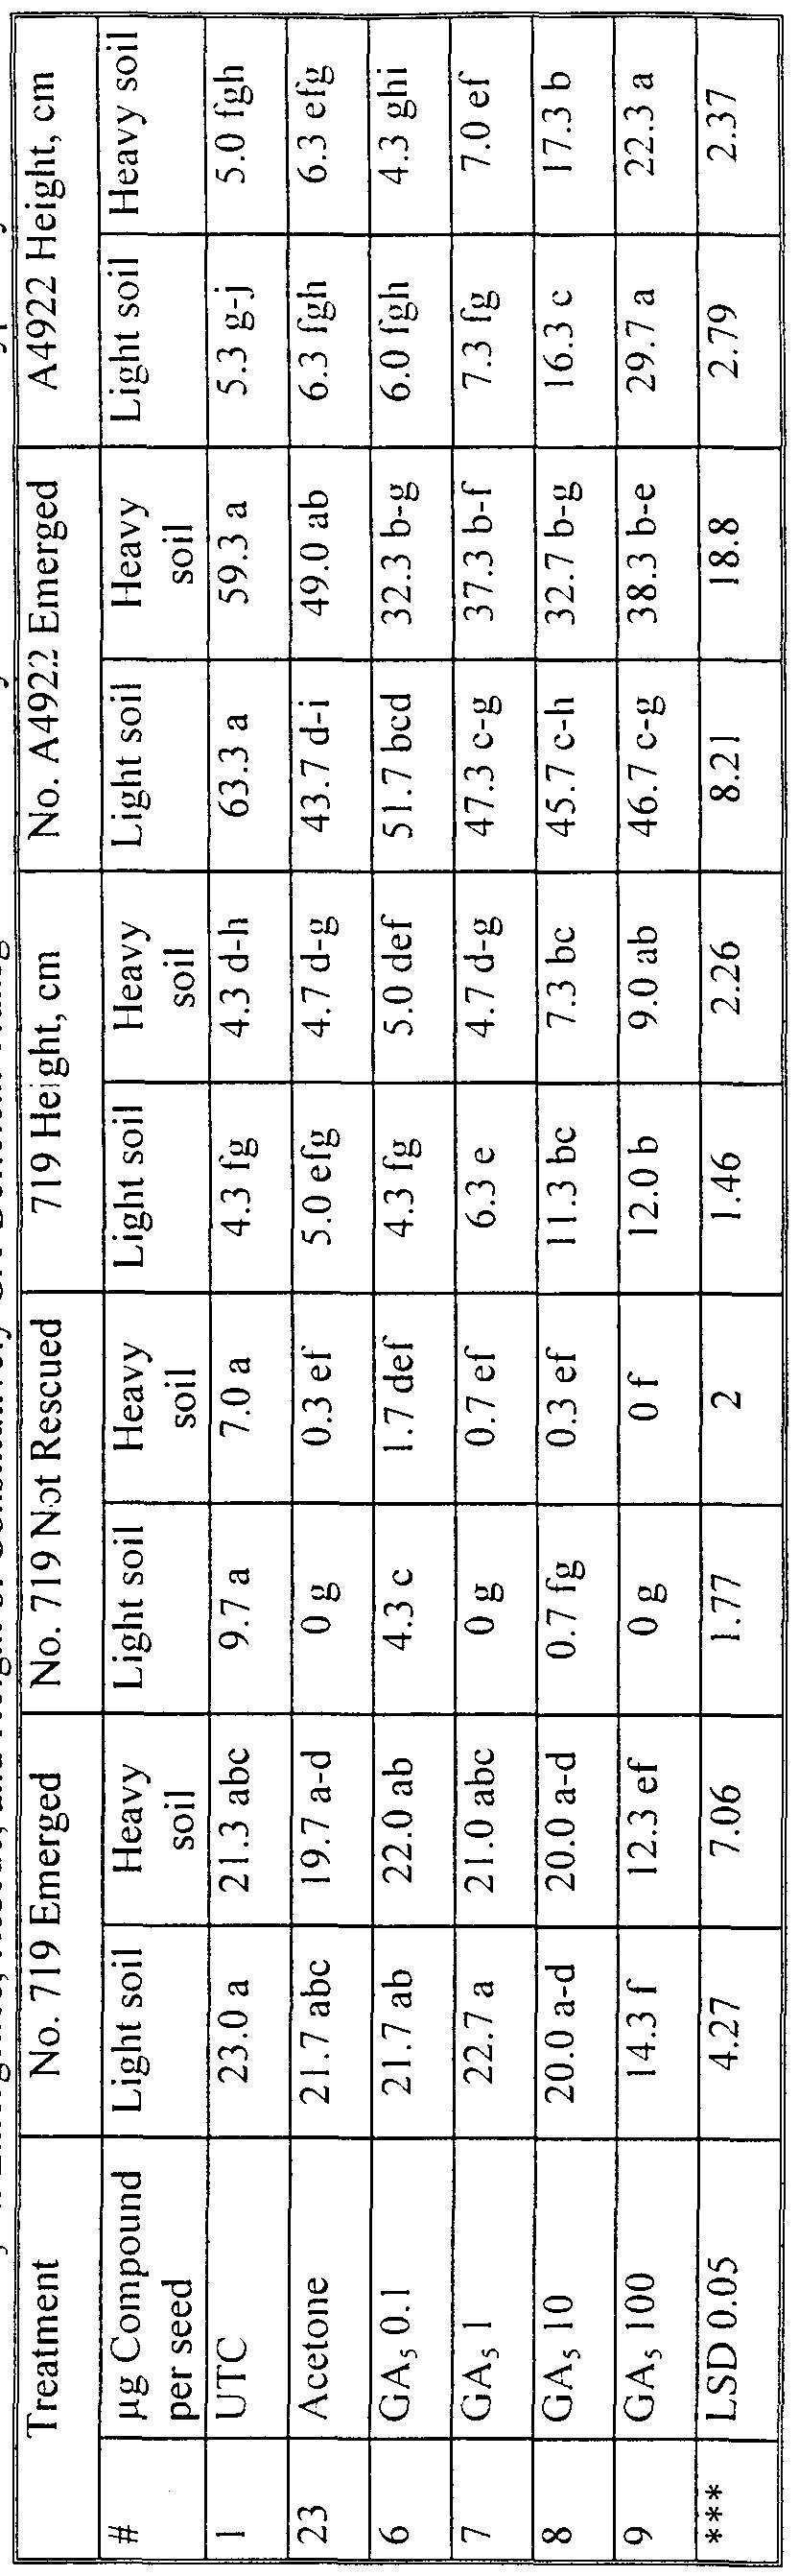 WO2000009722A2 - Methods for controlling gibberellin levels - Google